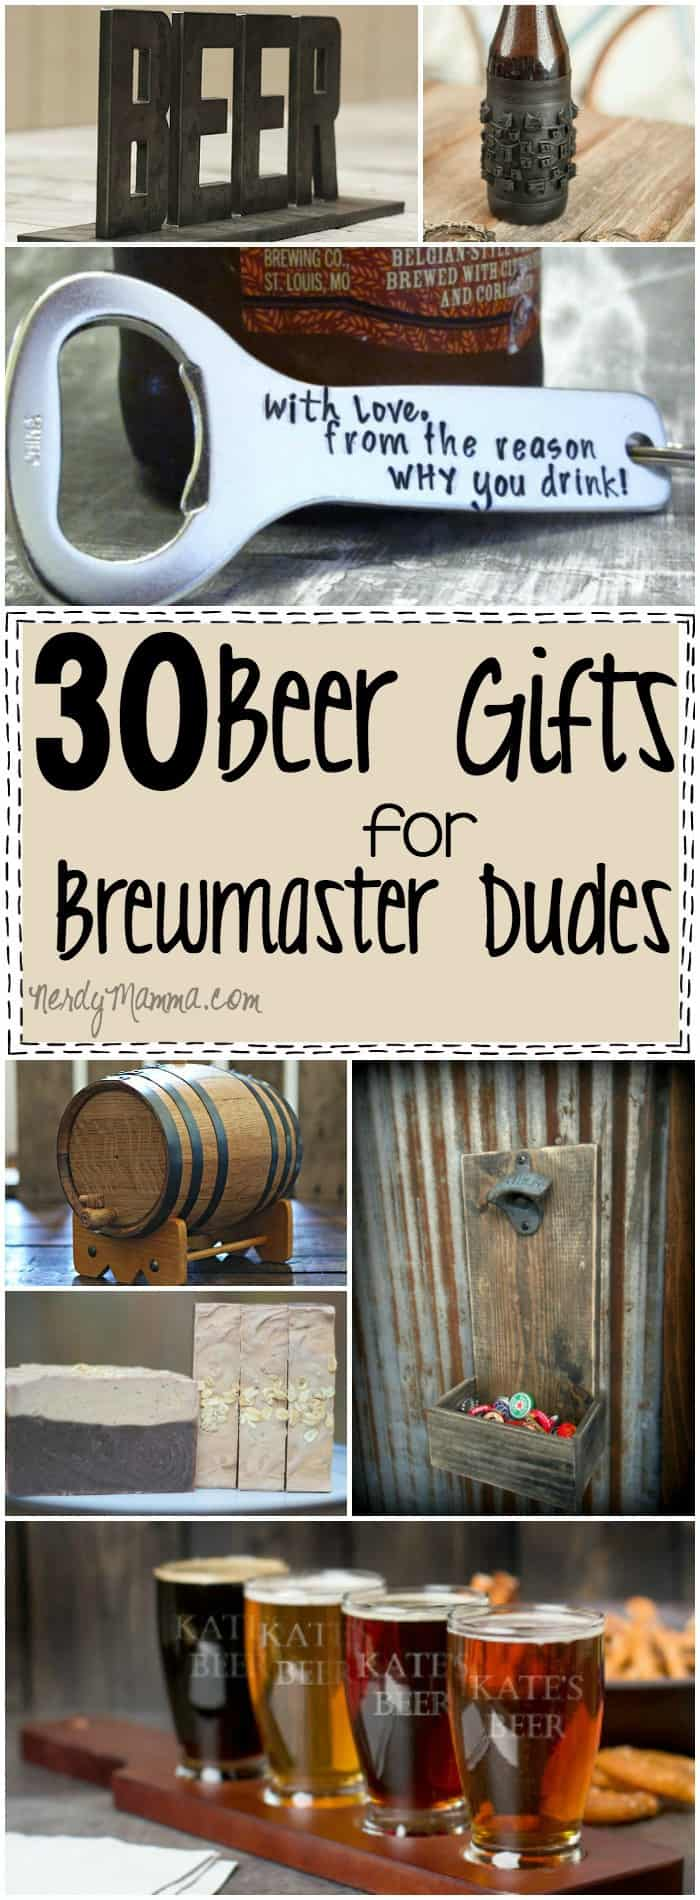 I can't wait to get him the perfect gift for Father's Day this year--And any one of these 30 Beer Gifts for the Brewmaster...they'd just be awesome!